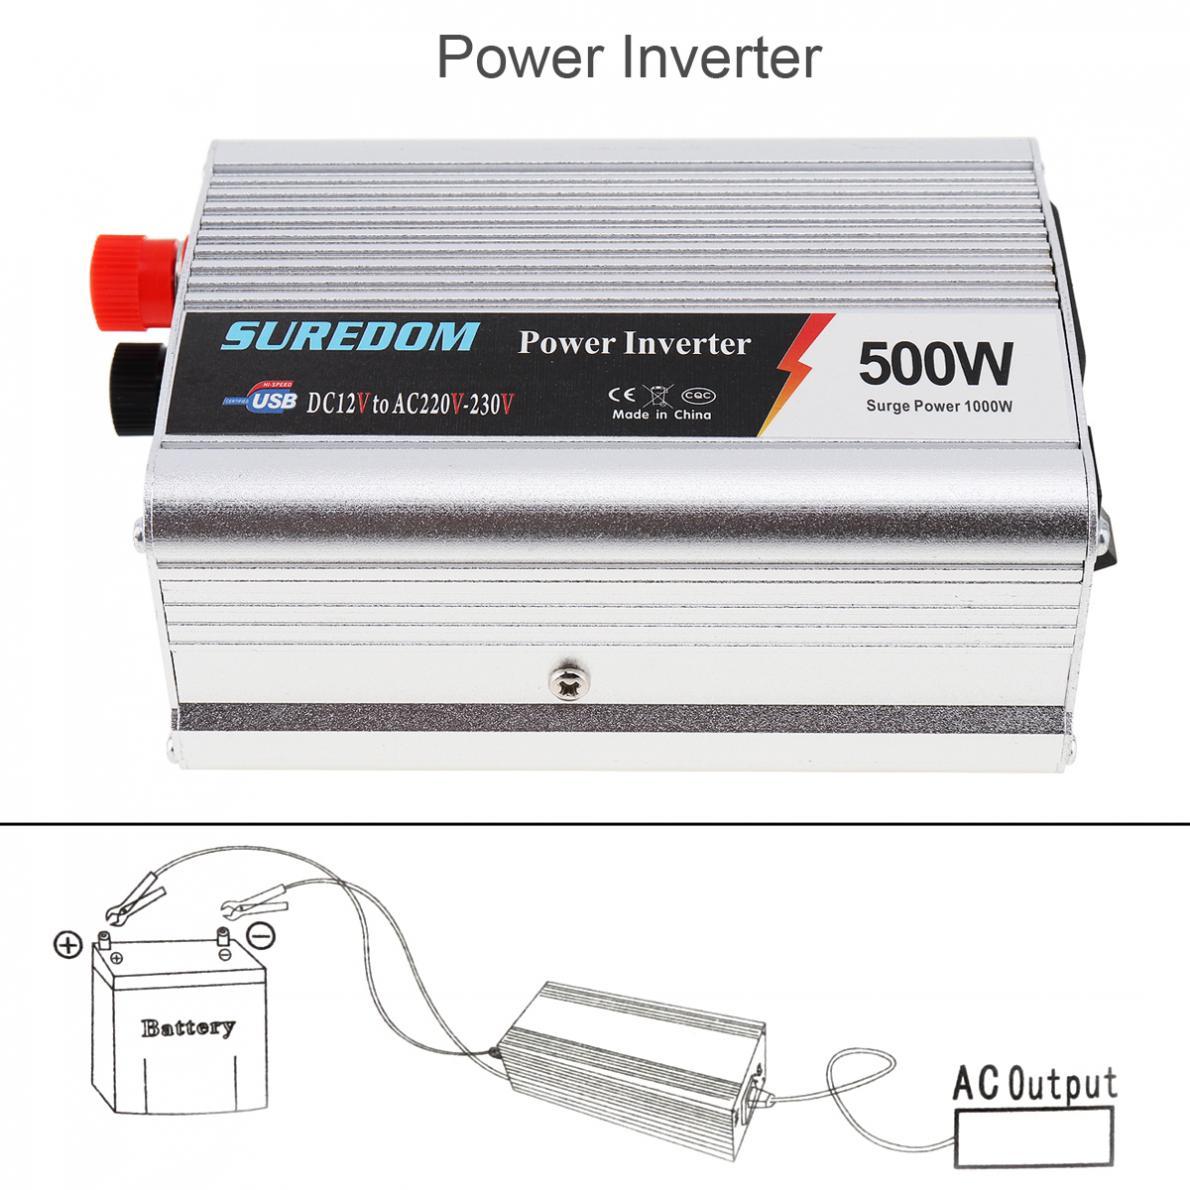 500W Car <font><b>Inverter</b></font> DC <font><b>12V</b></font> 24V to AC 220V 110V USB Auto Power <font><b>Inverter</b></font> Adapter Charger Voltage Transformer Peak Power <font><b>1000W</b></font> image